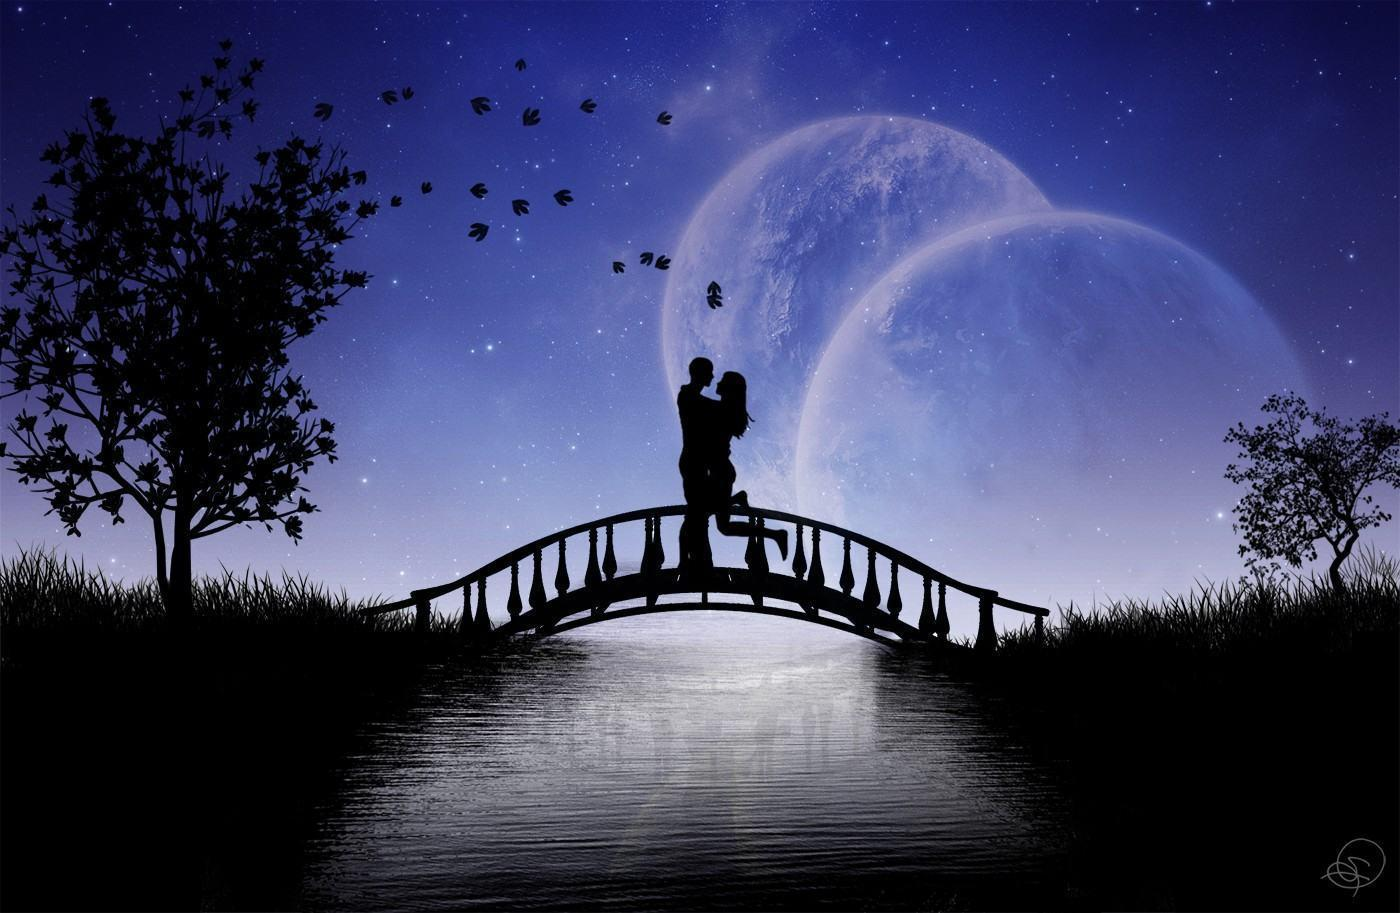 Cute Couples Quotes Wallpapers Romantic Couples Wallpapers Wallpaper Cave